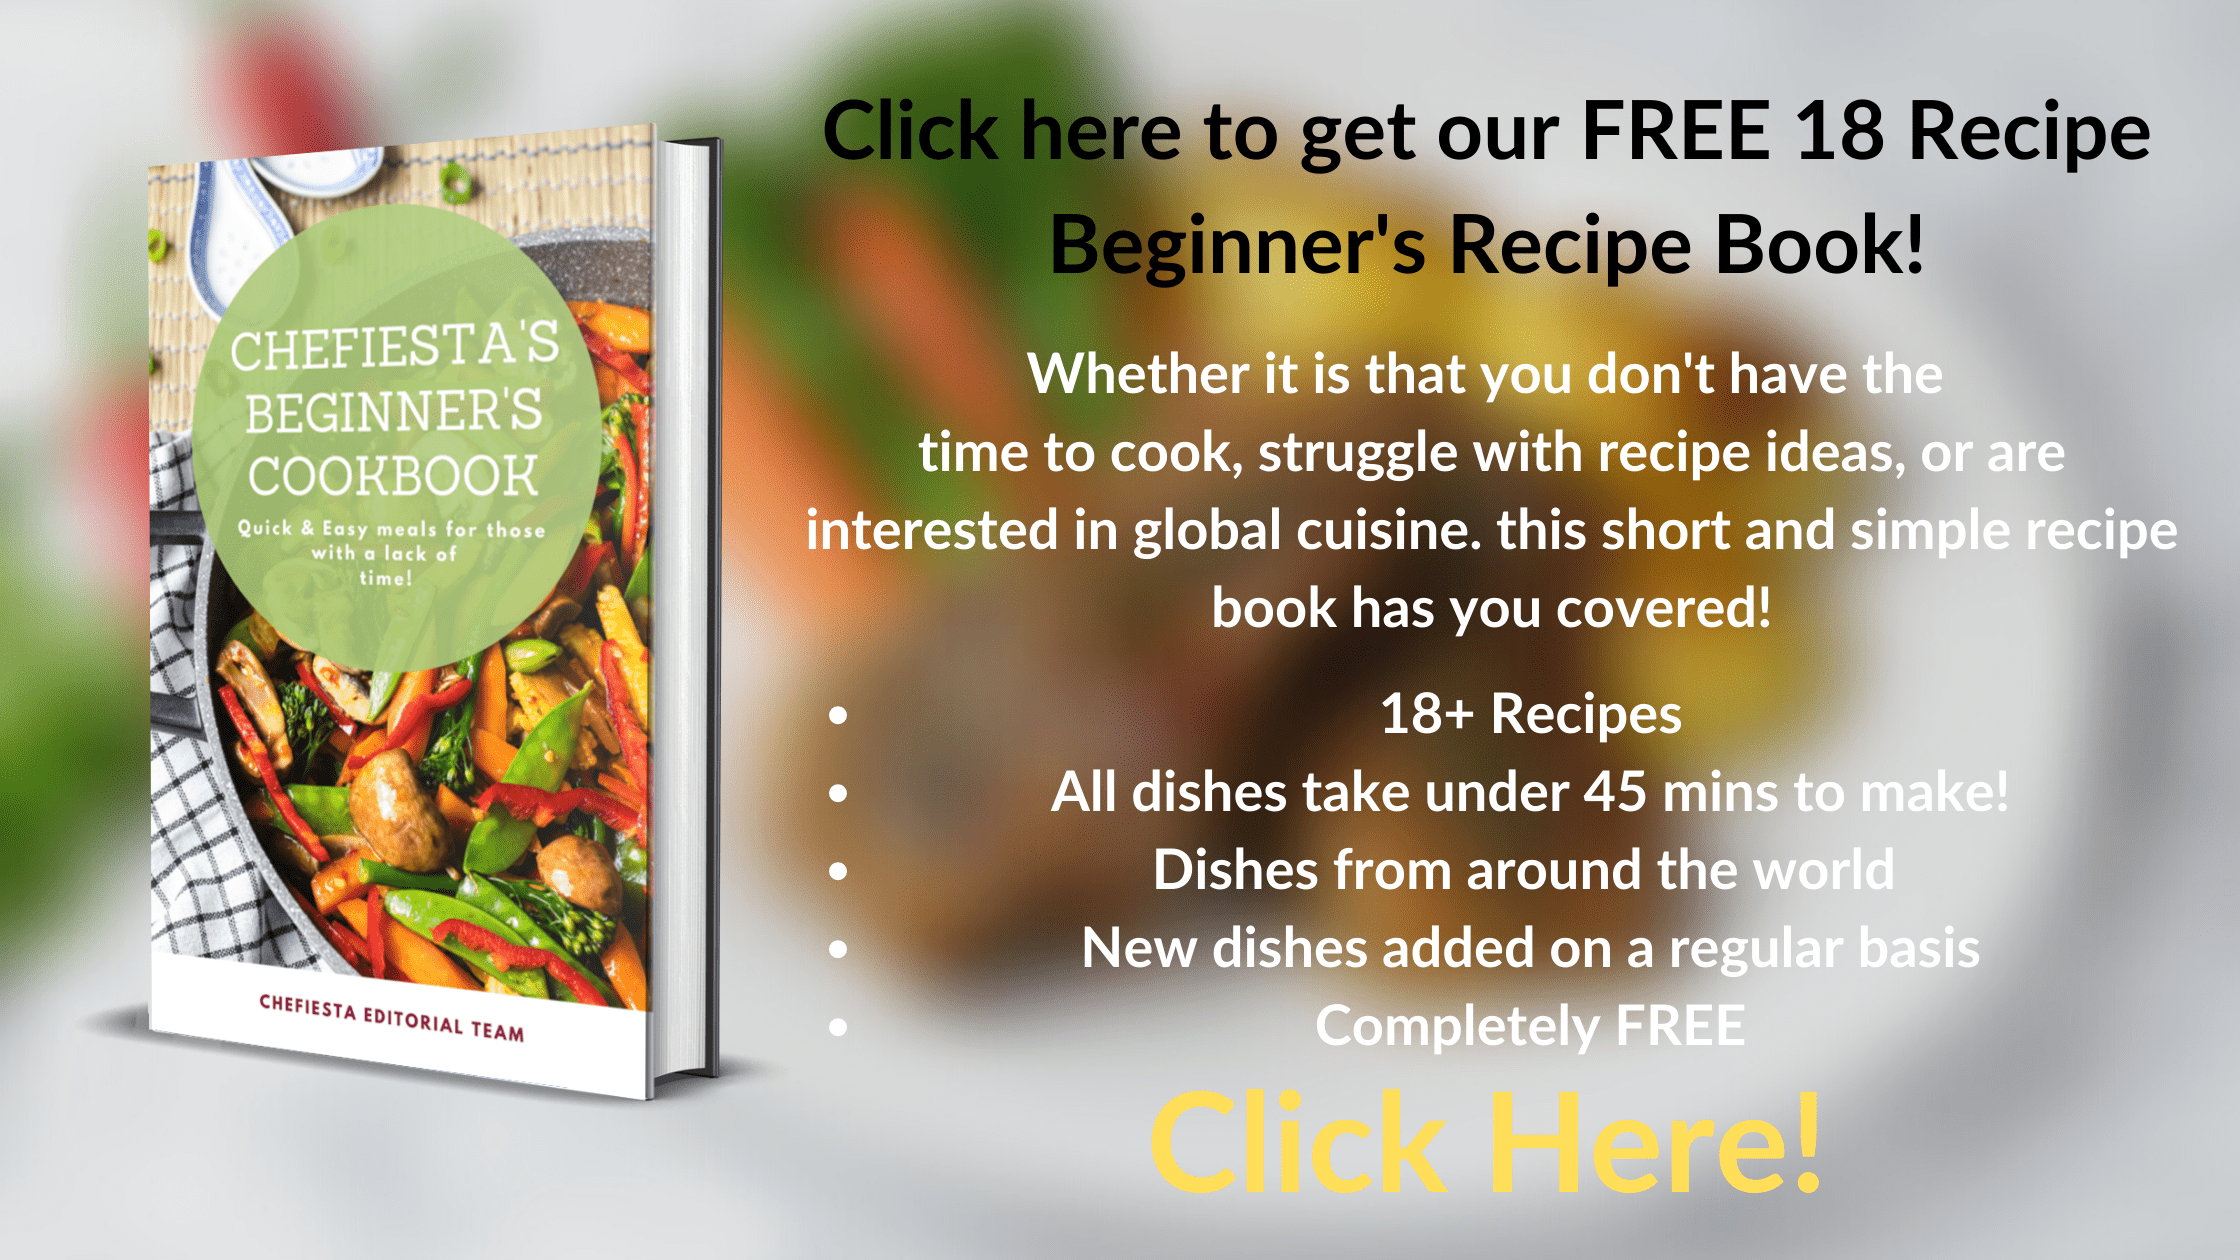 Click on our book cover to get our 18 Recipe Beginners Recipe book! Whether it is that you don't have the  time to cook, struggle with recipe ideas, or are interested in global cuisine. this short and simple recipe book has you covered!  18+ Recipes  All dishes take under 45 mins to make! Dishes from around the world  New dishes added on a regular basis Completely FREE Click Here - meal prep, meal delivery service